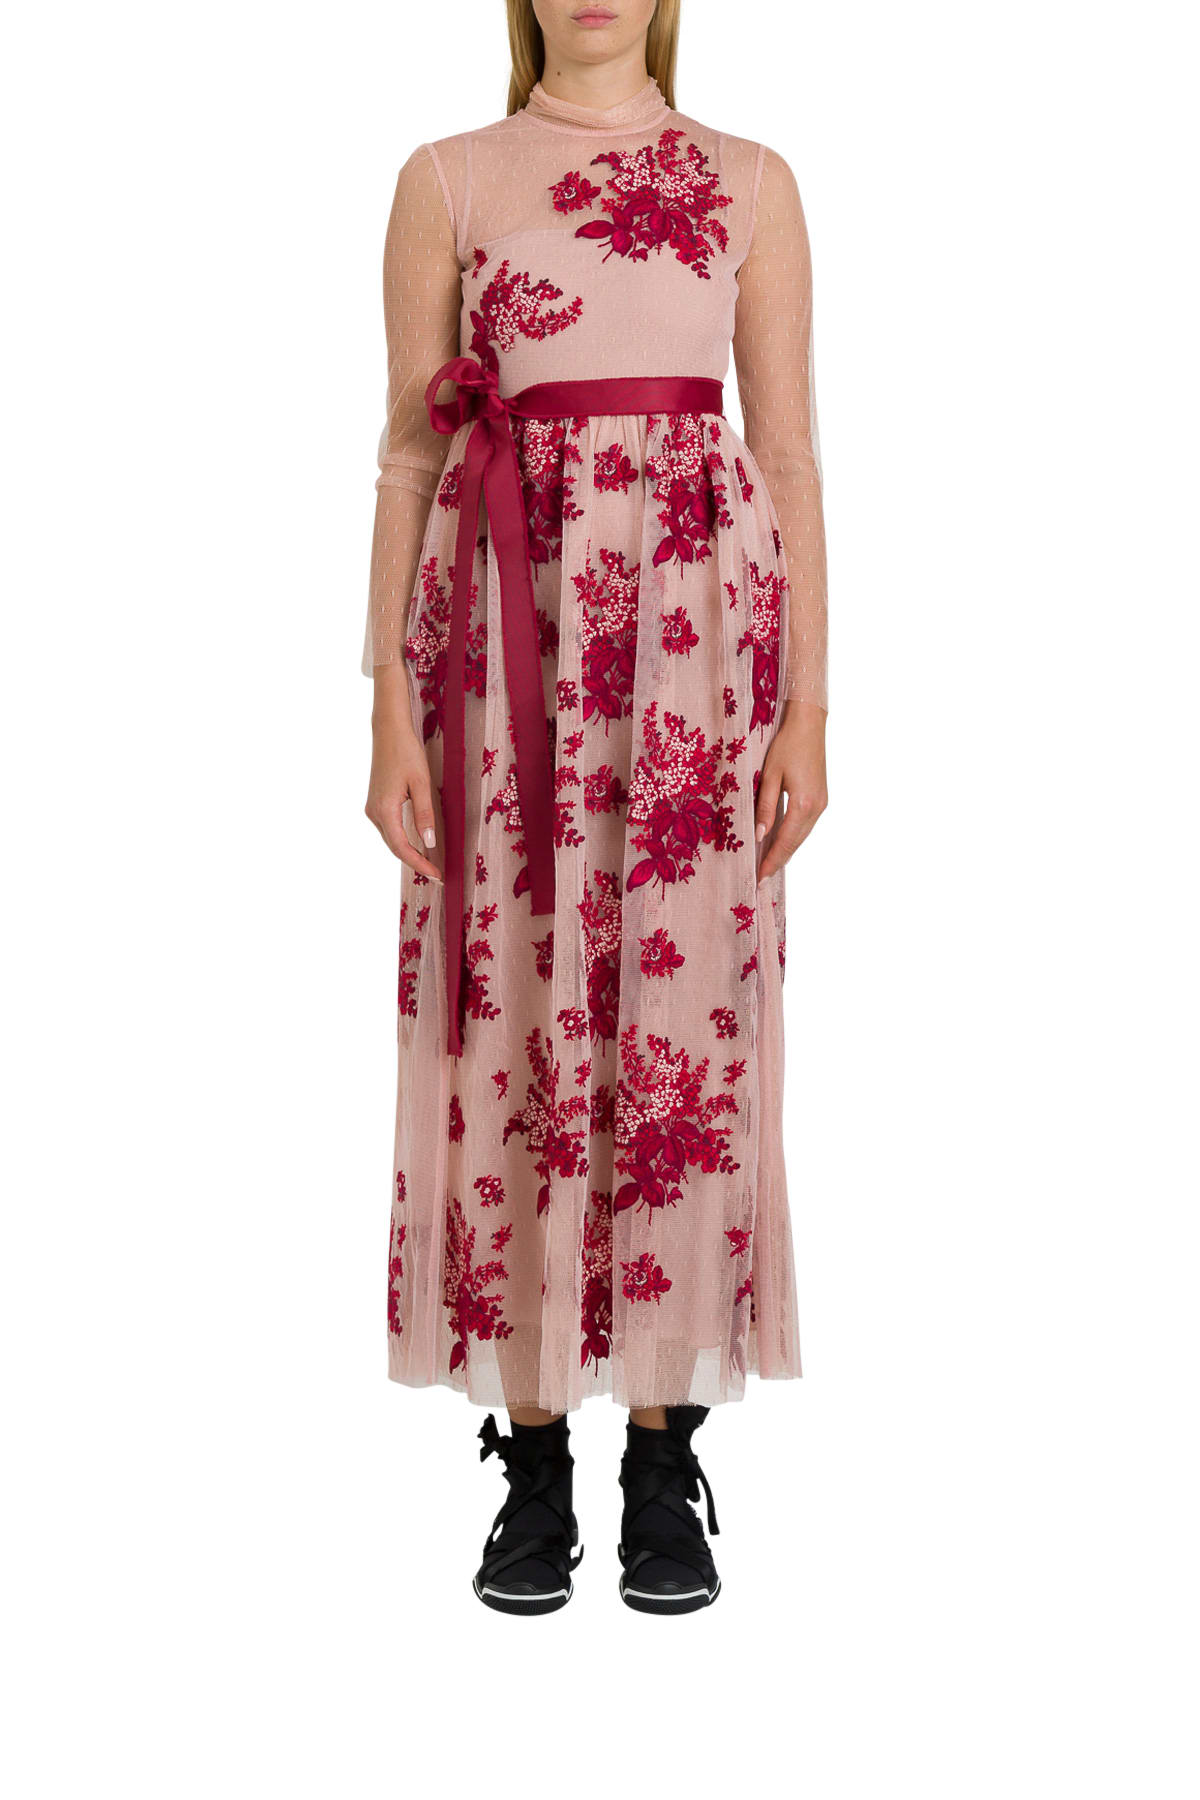 RED Valentino Floral Tapestry Embroidered Point Despirit Maxi Dress